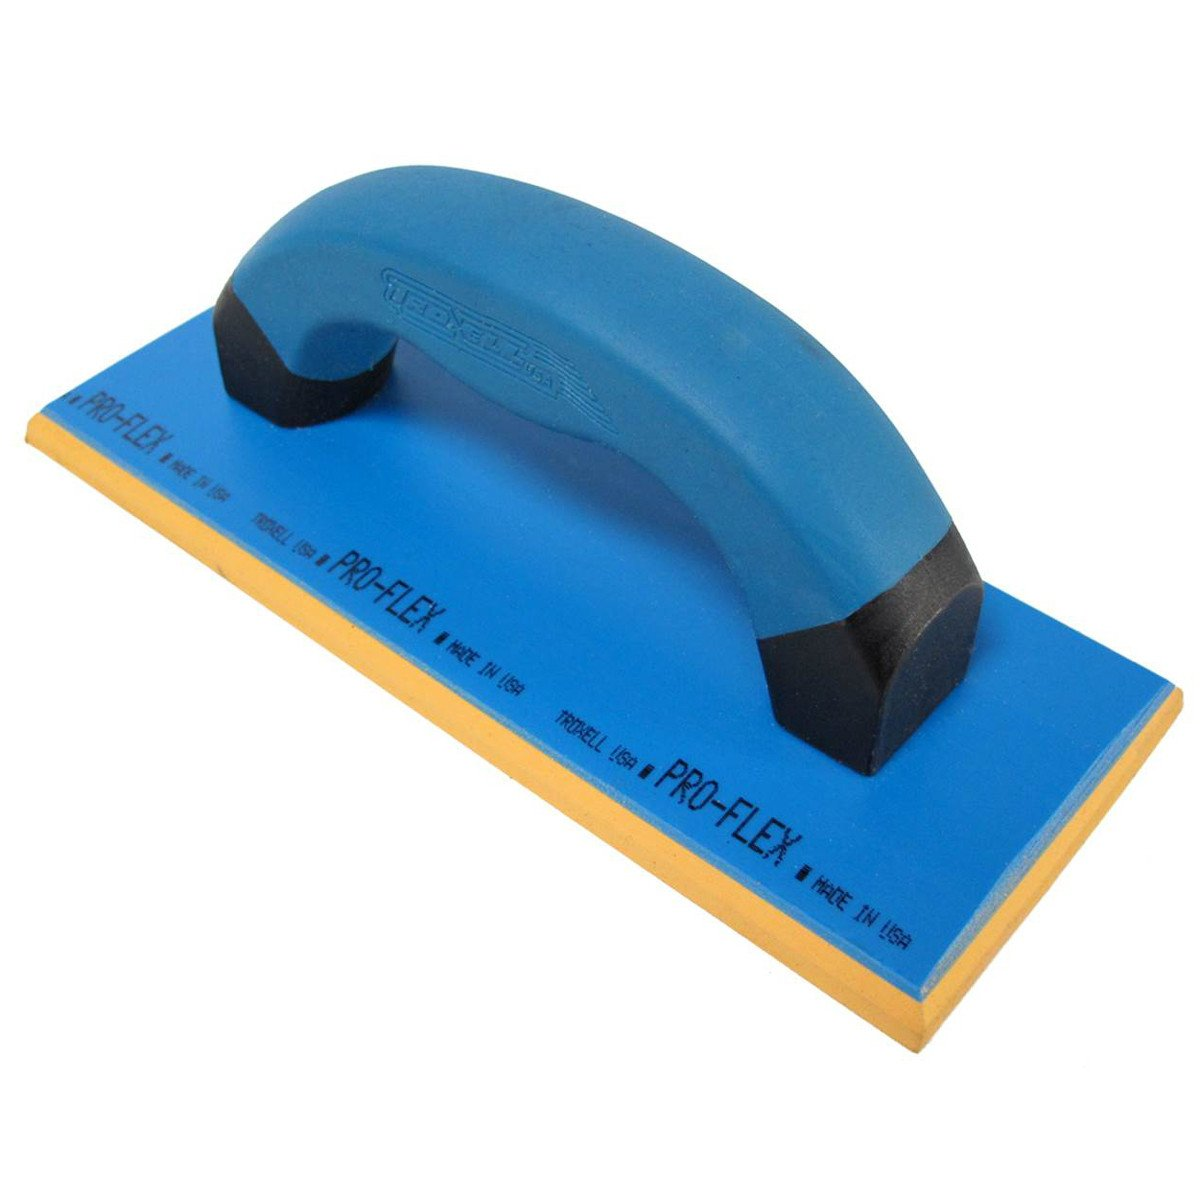 Epoxy Gum Rubber Grout Float 9'' x 4'', 09-KF by TROXELL USA